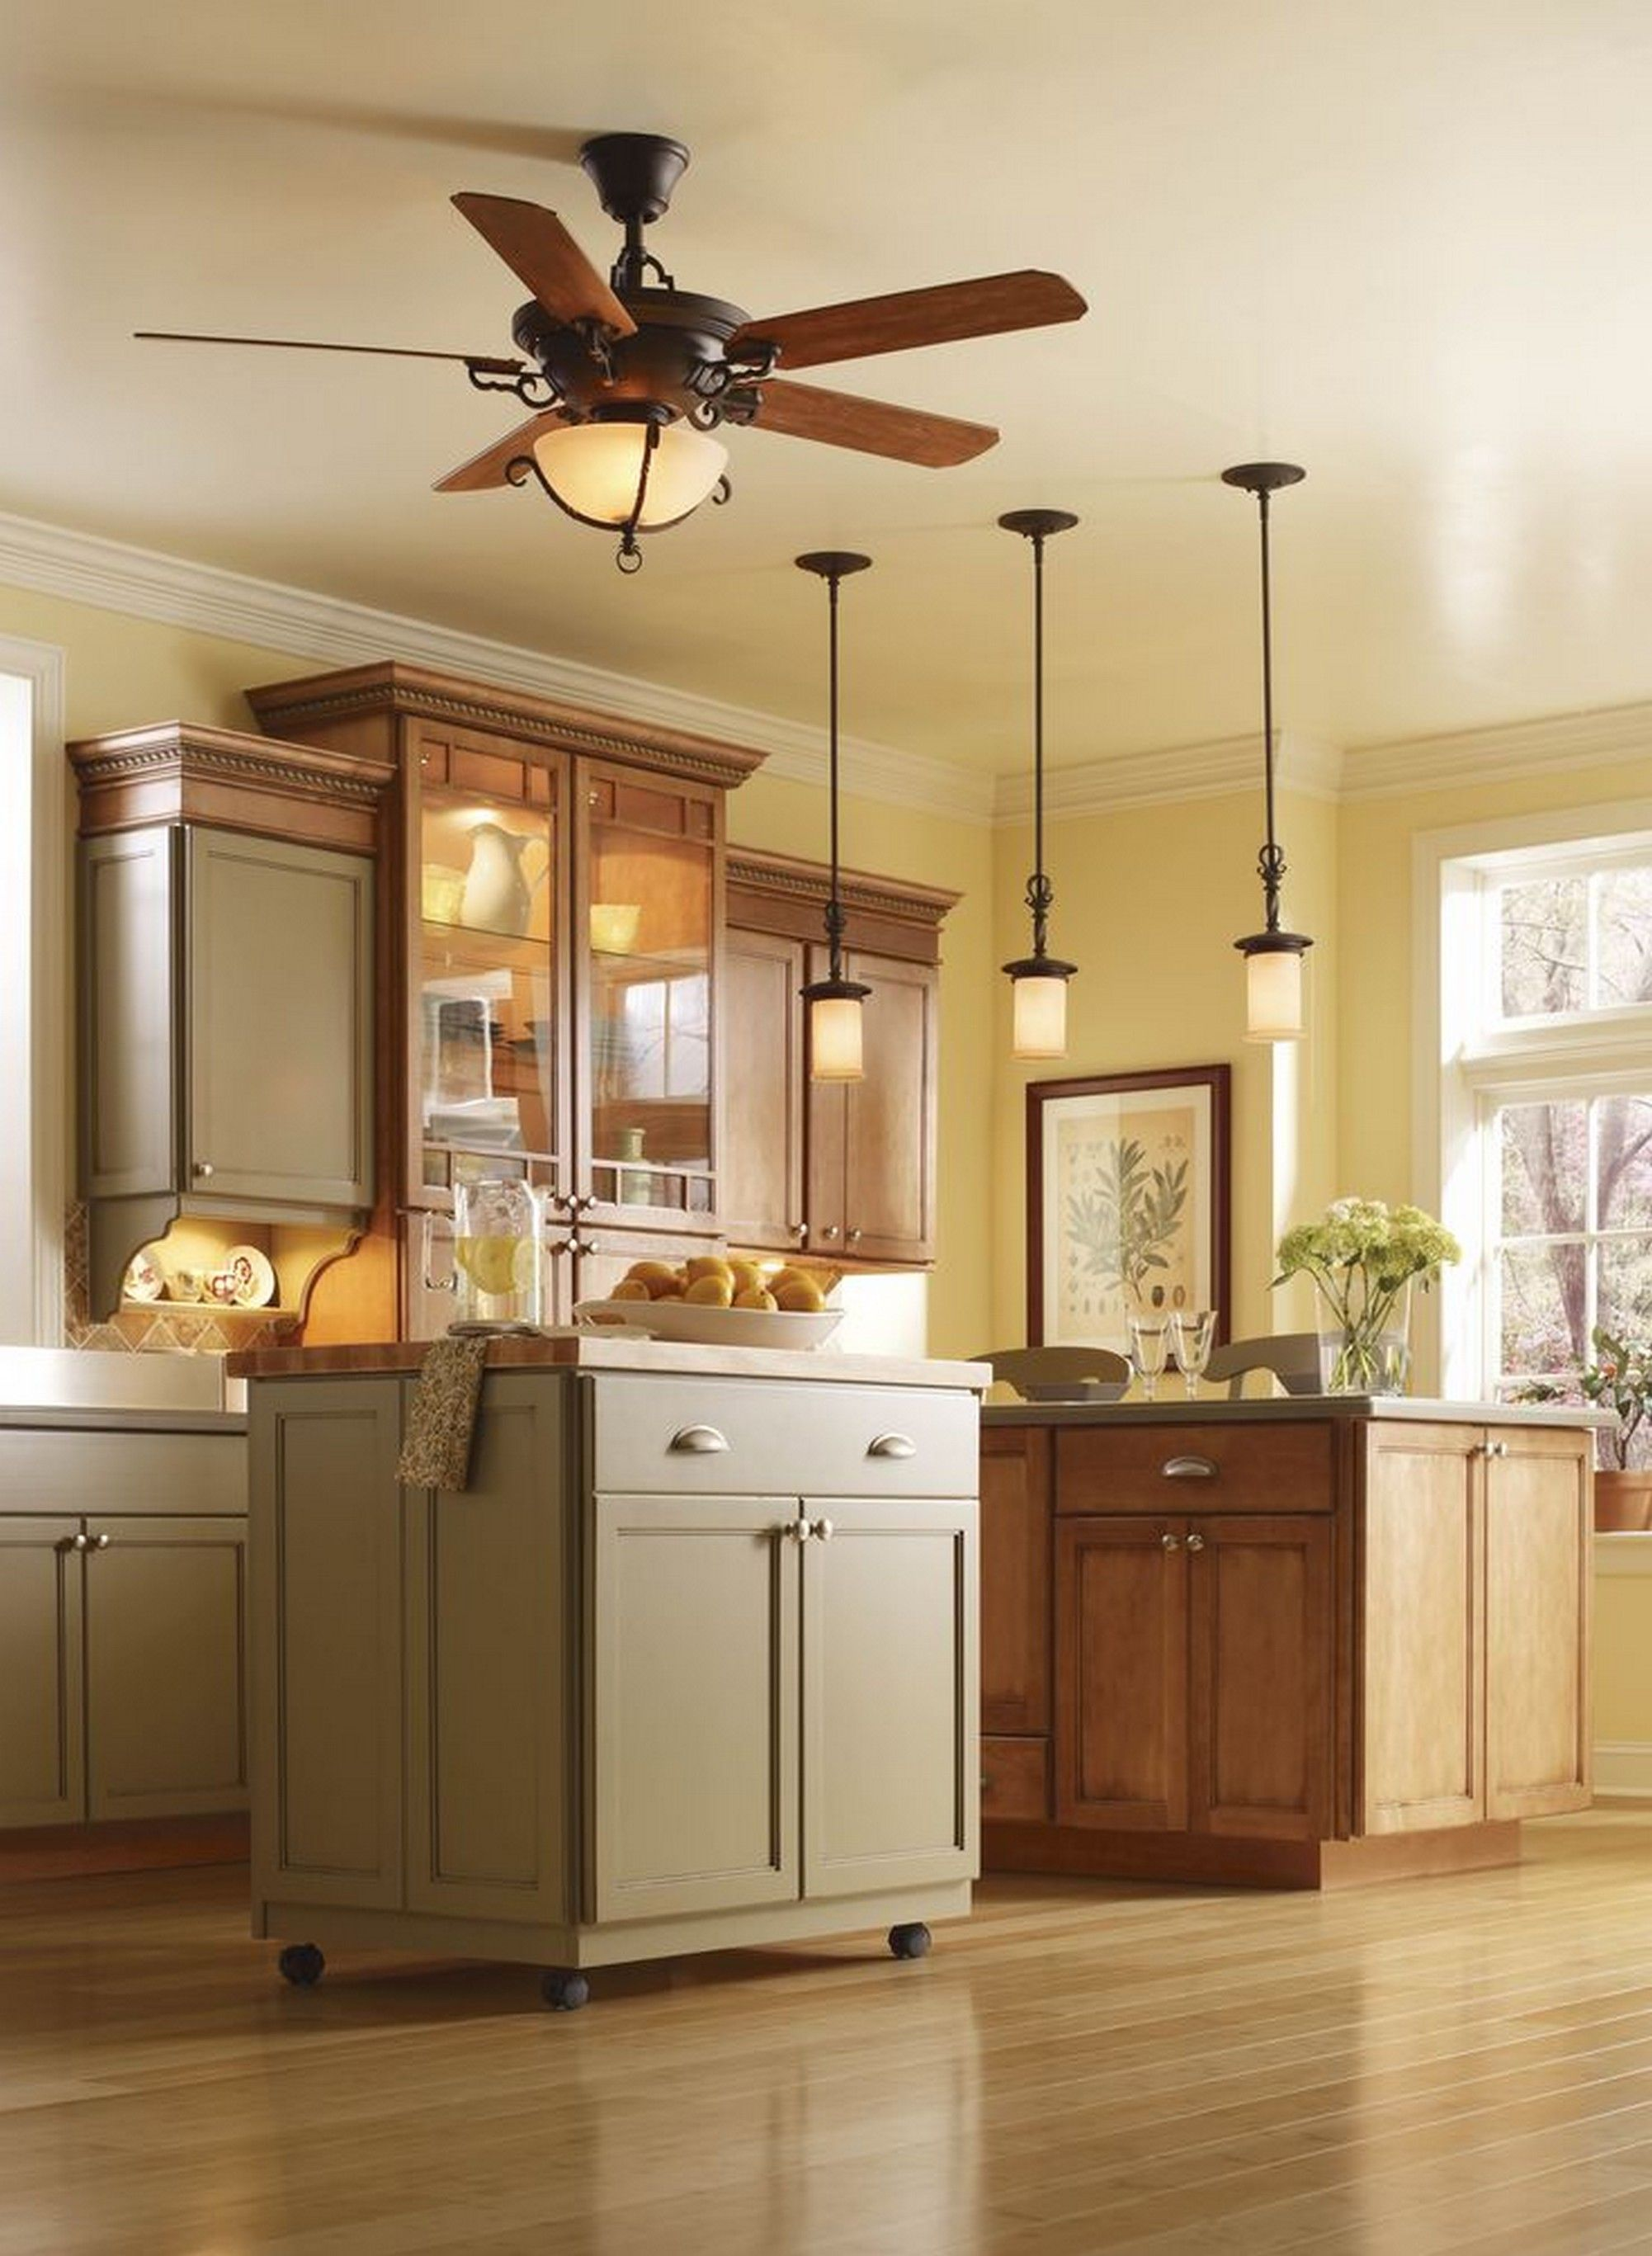 Kitchen Ceiling Fan Small Island Under Awesome Kitchen Ceiling Lights With Wooden